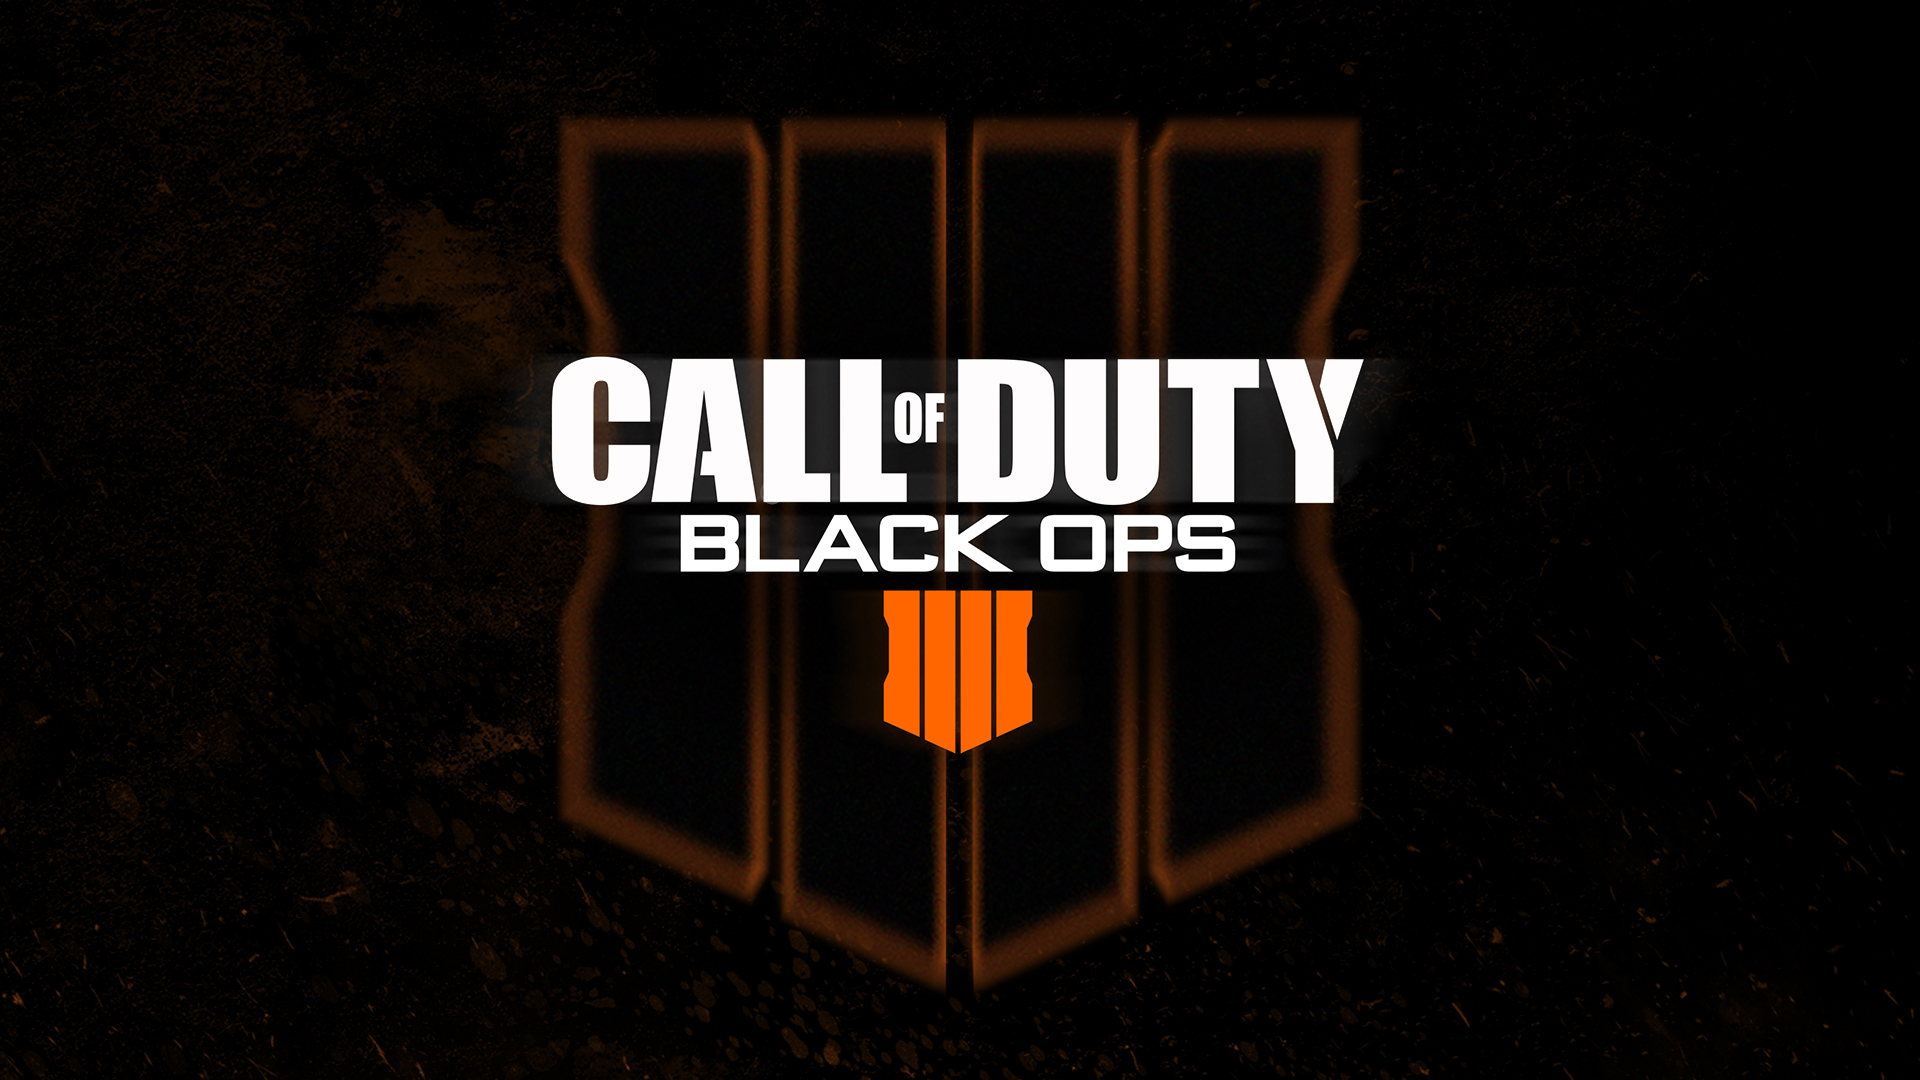 Call Of Duty Black Ops 4 Hd Games 4k Wallpapers Images